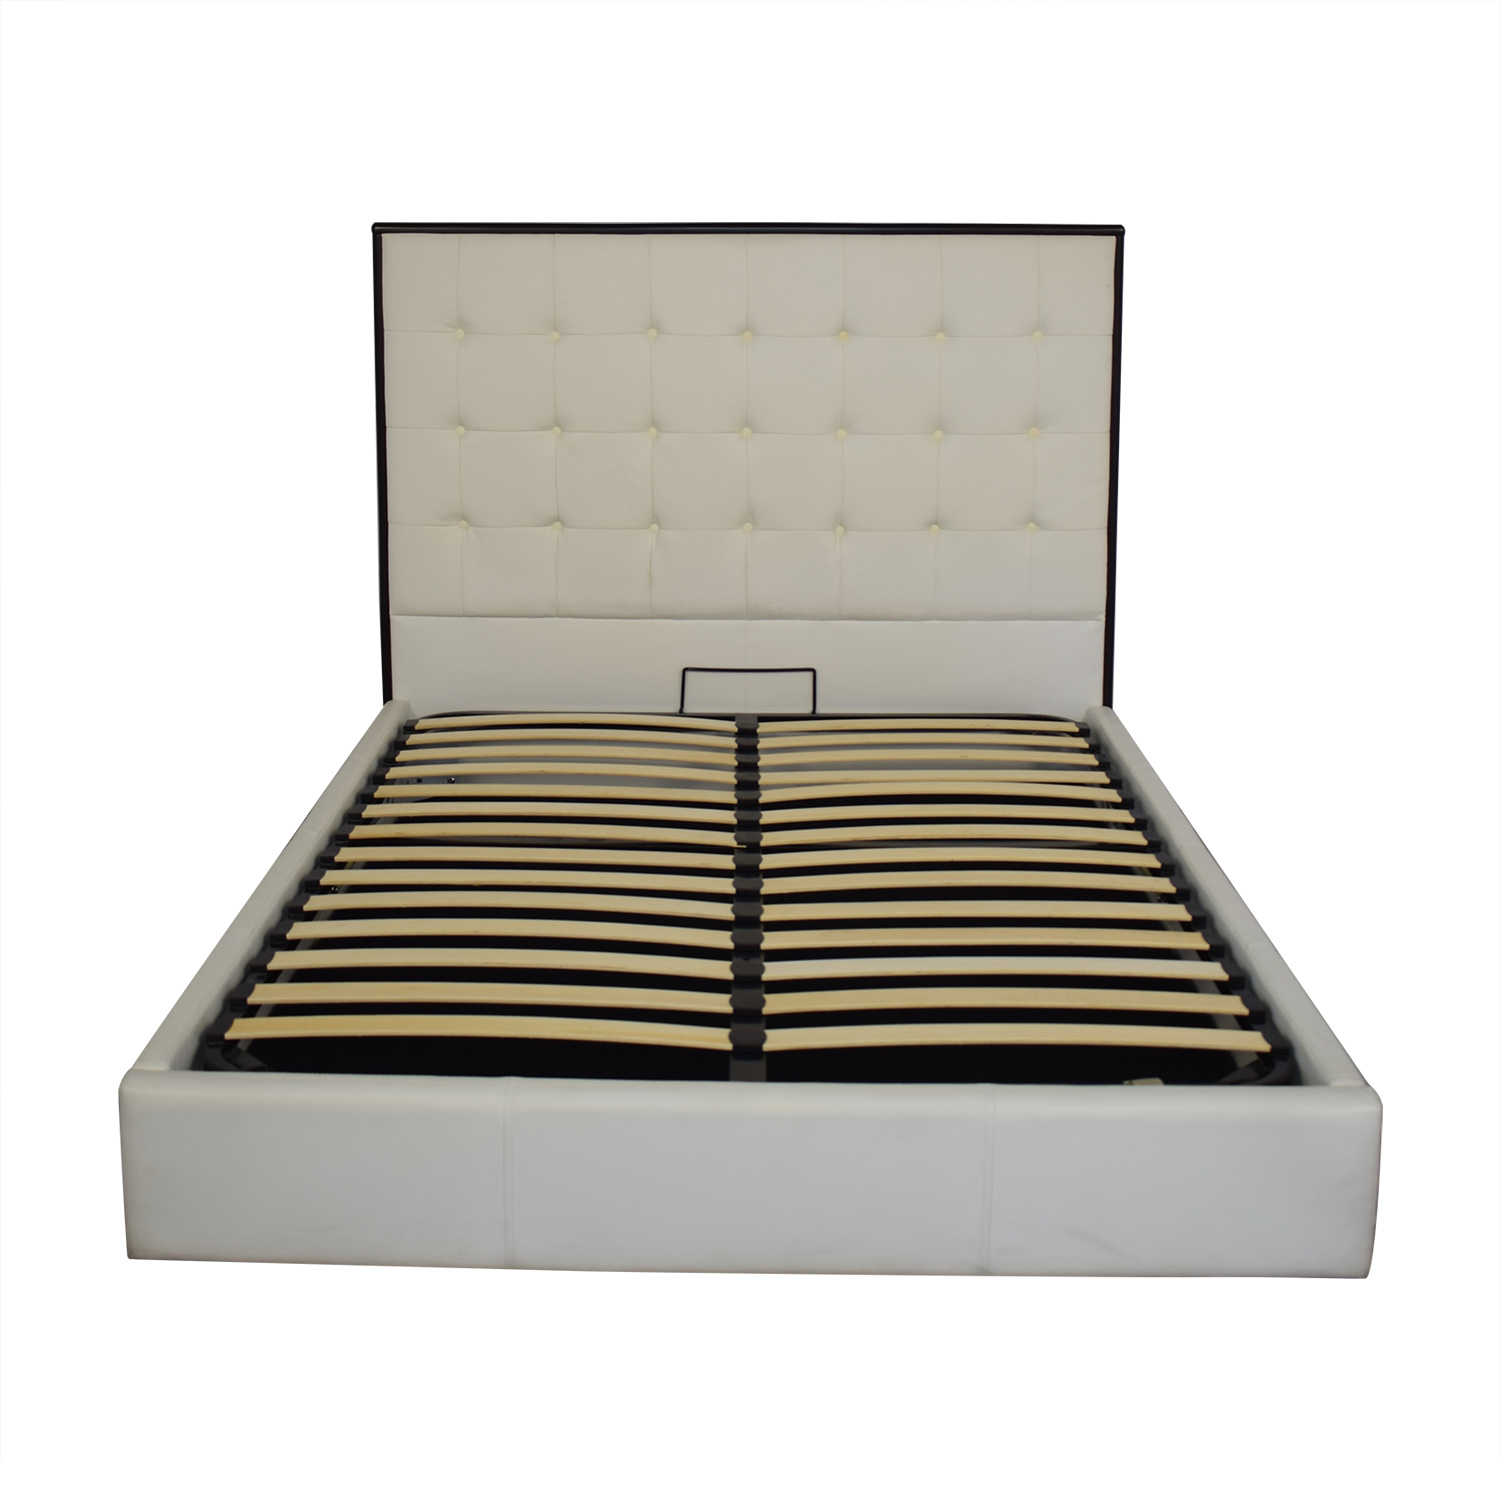 Tufted Queen Bed with Lift Storage Beds